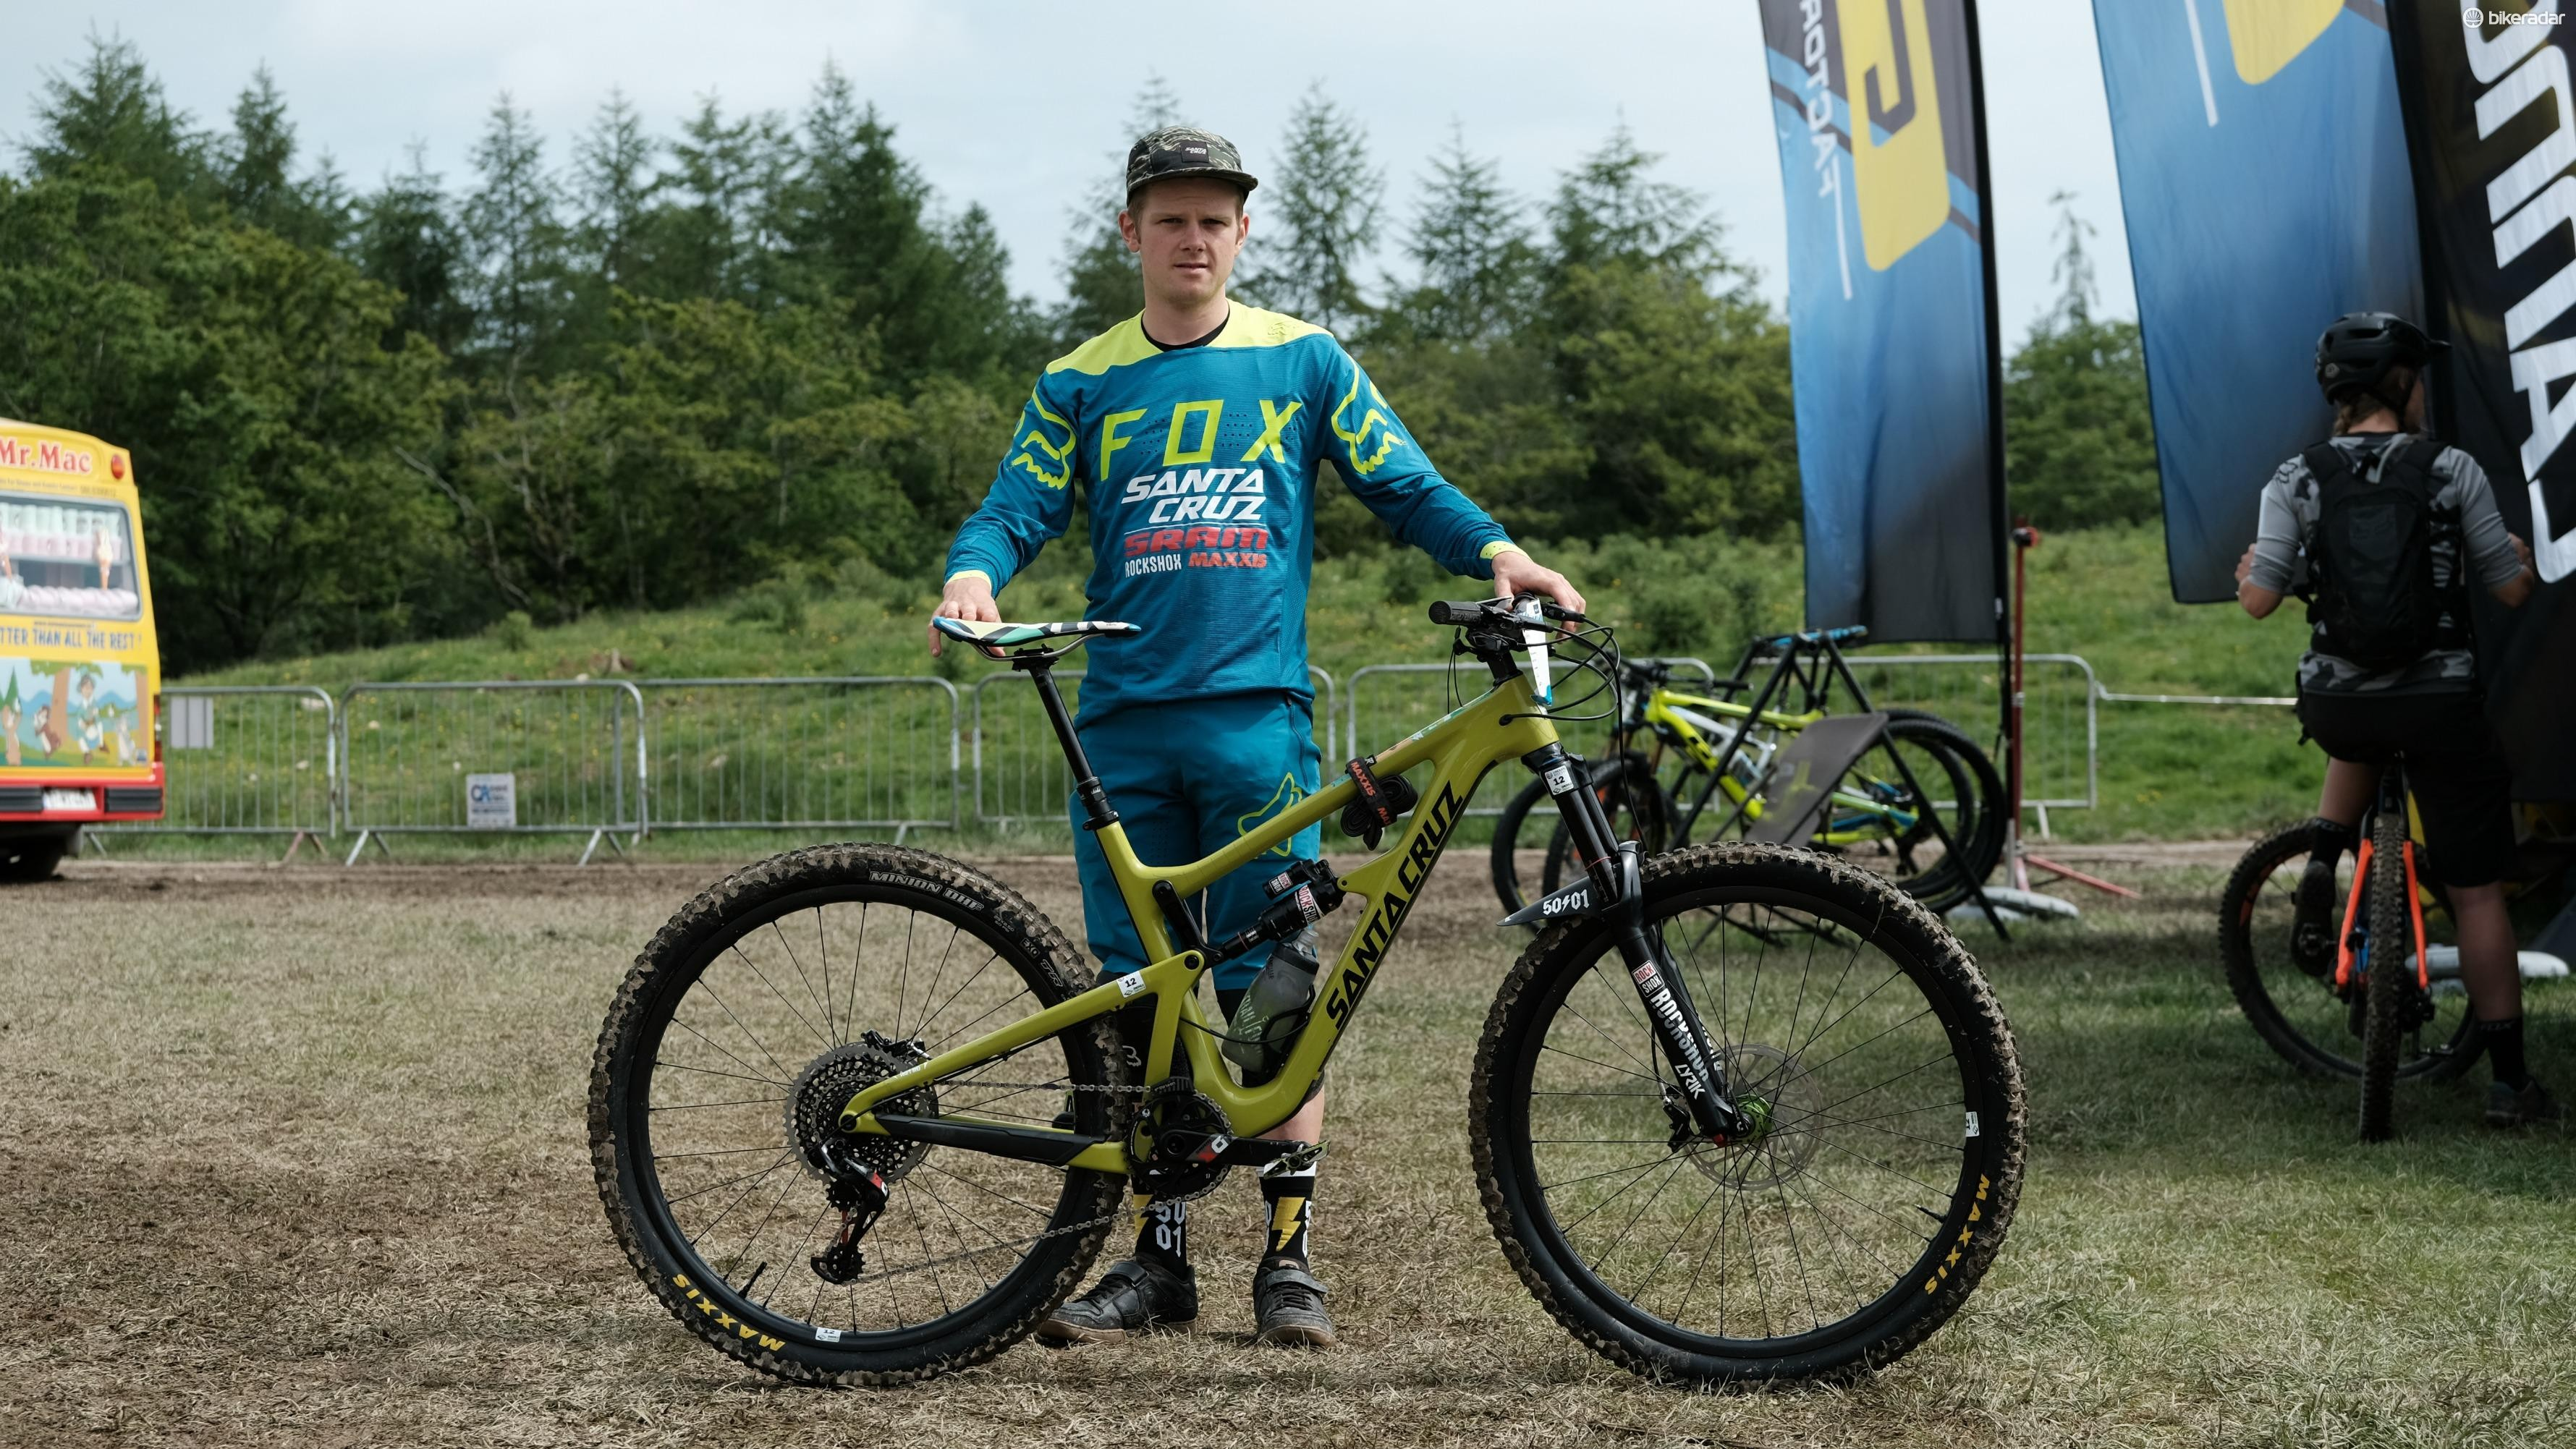 Santa Cruz rider Mark Scott... and is there something different about that Hightower?